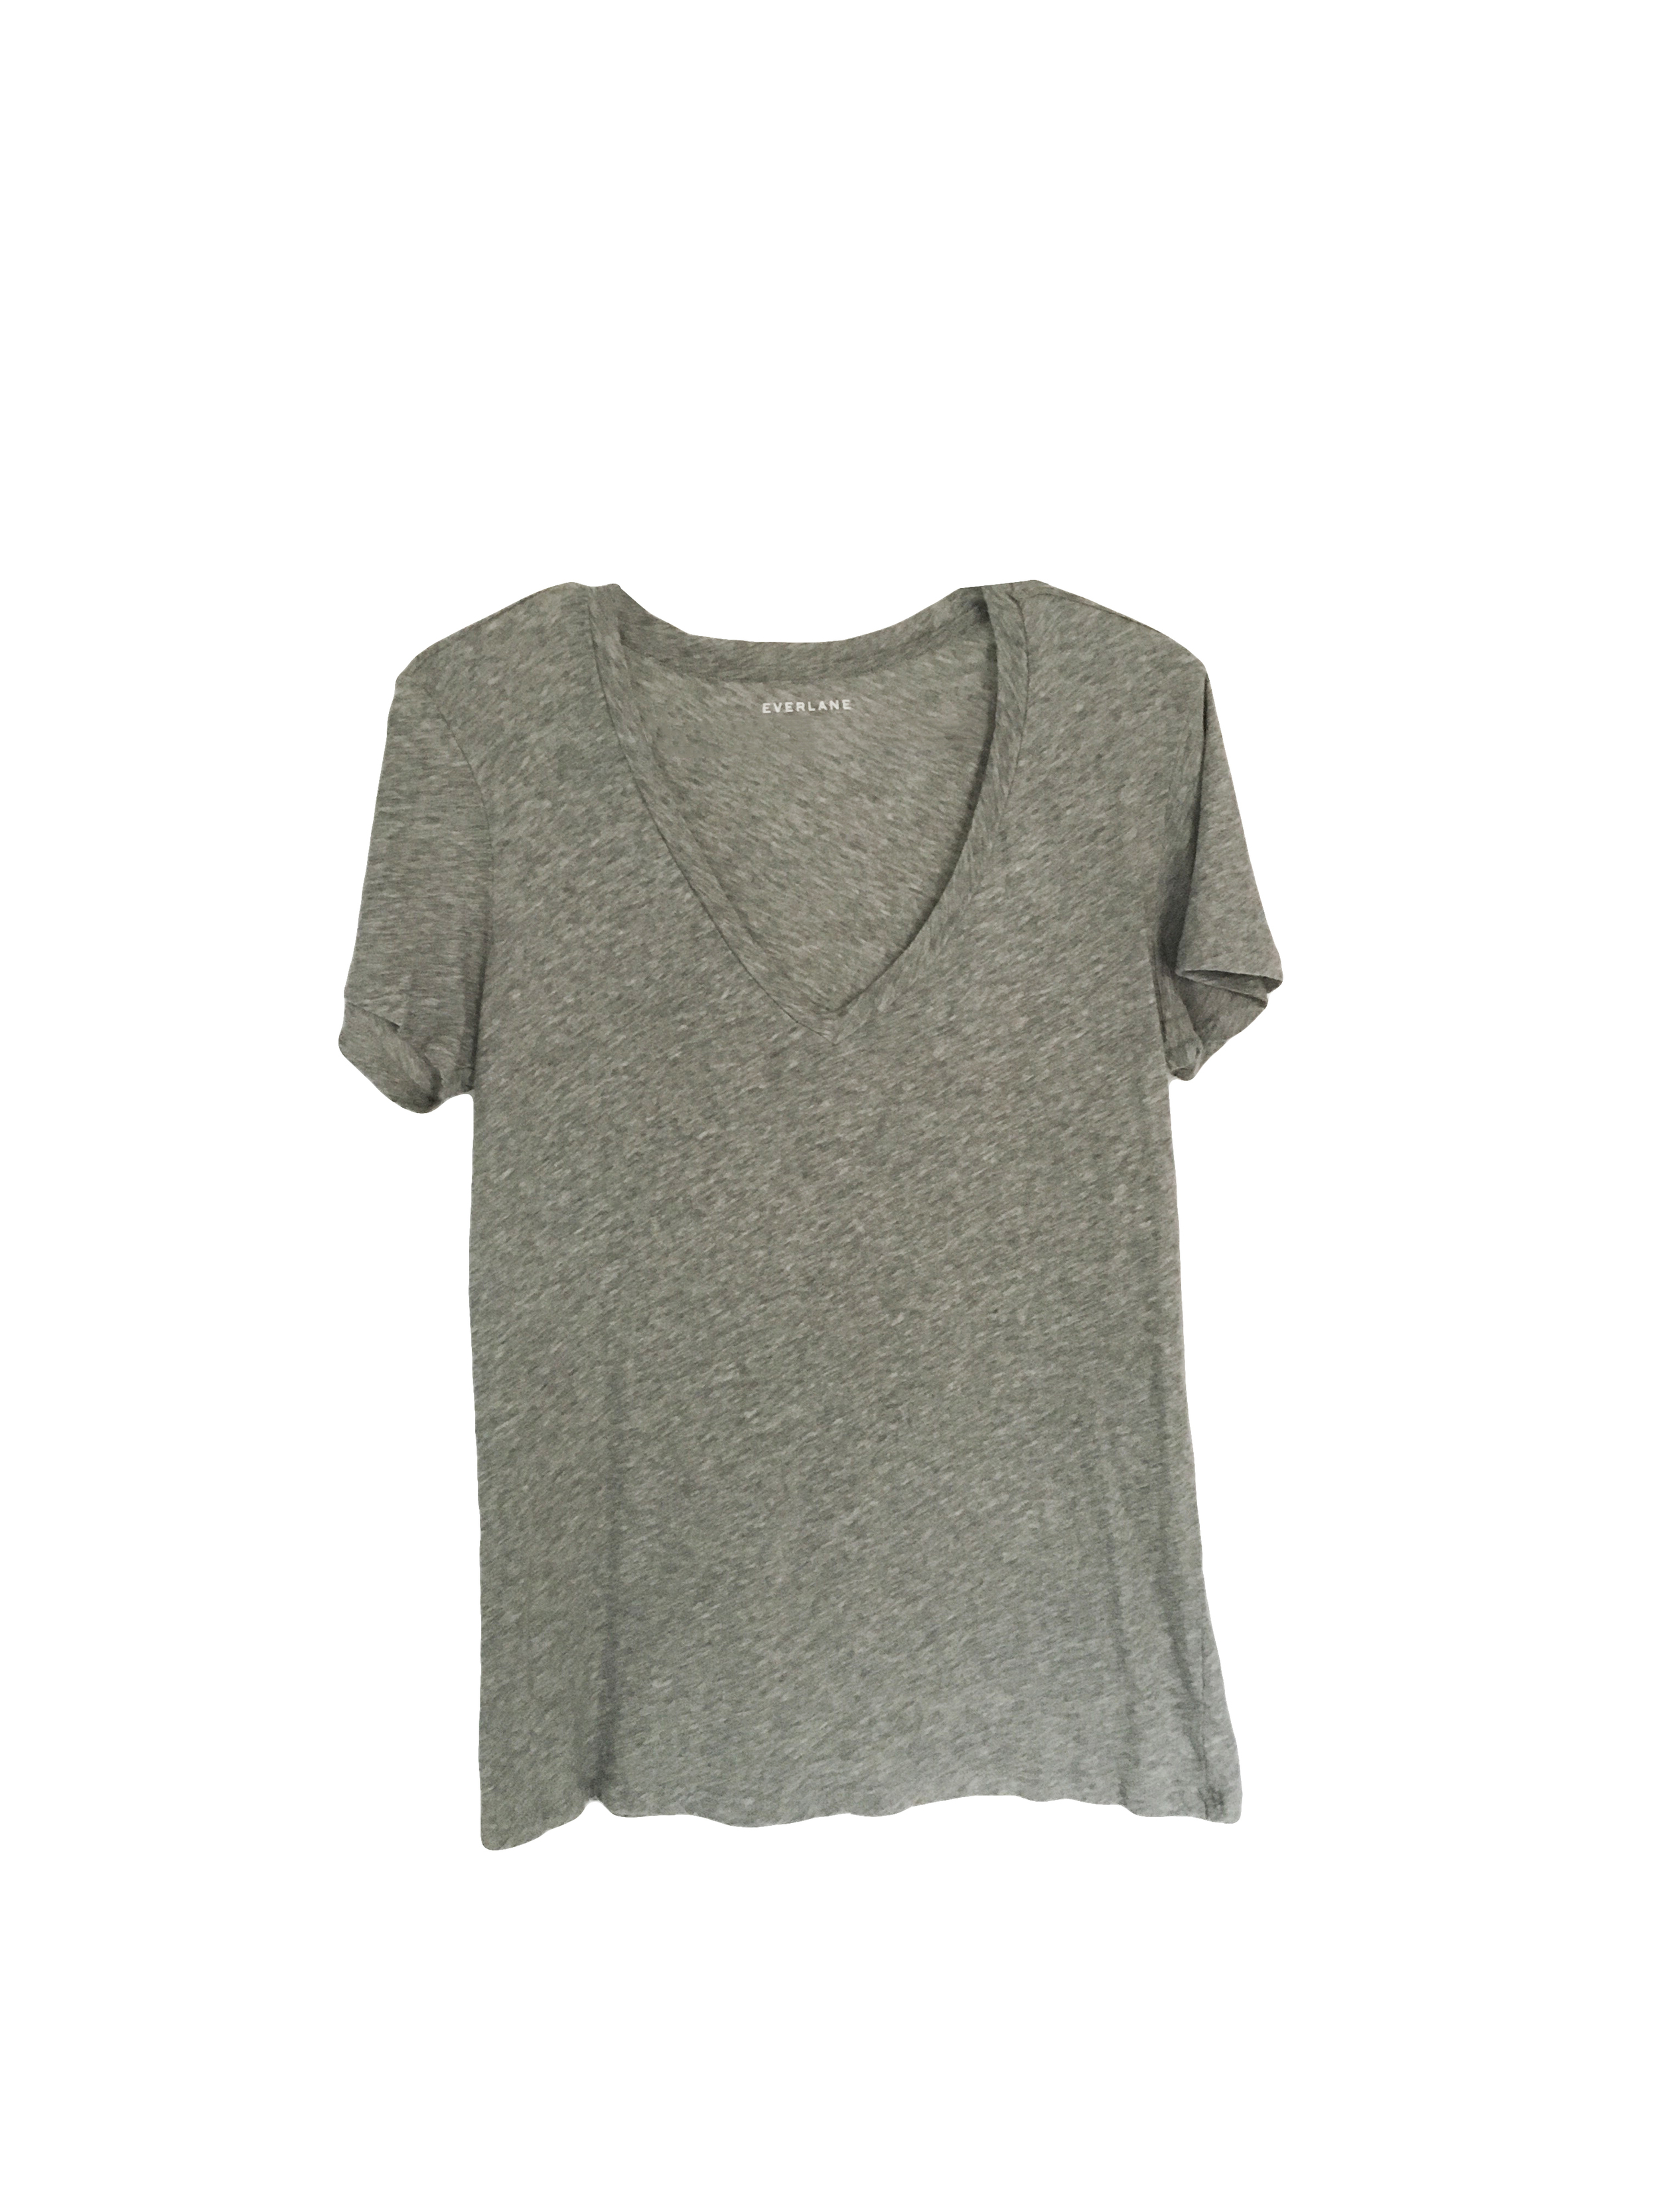 Everlane Gray Cotton Tee | A Capsule Wardrobe Basic and Staple at Cat On The Moon | A thoughtful style blog for a simple life.